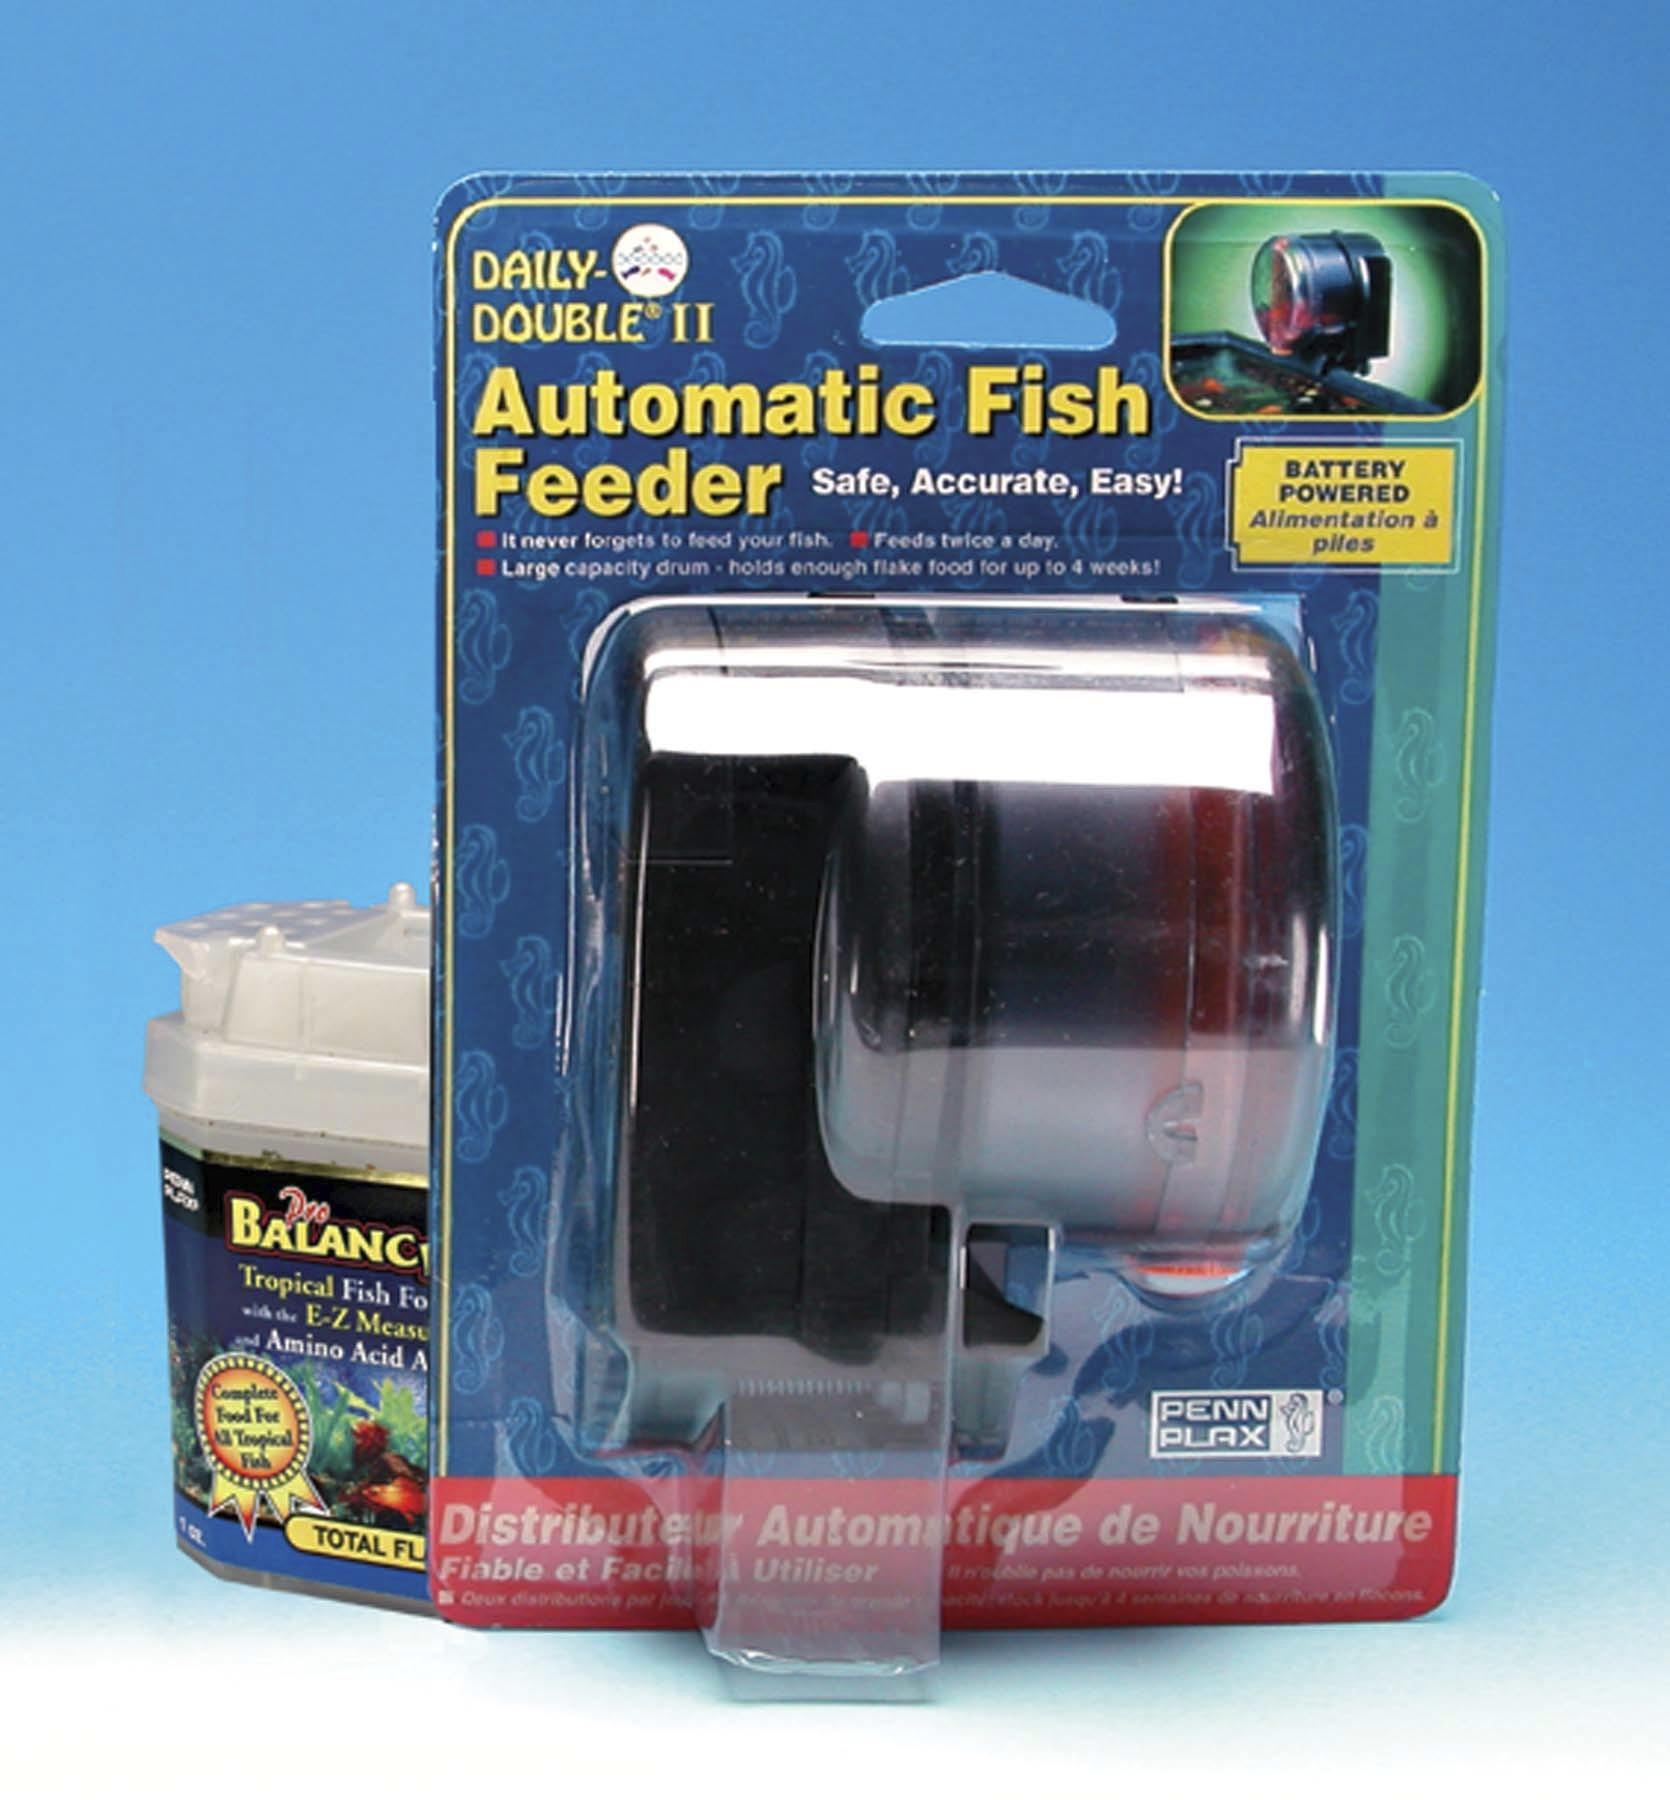 Penn plax daily double ii battery operated for Auto fish feeder